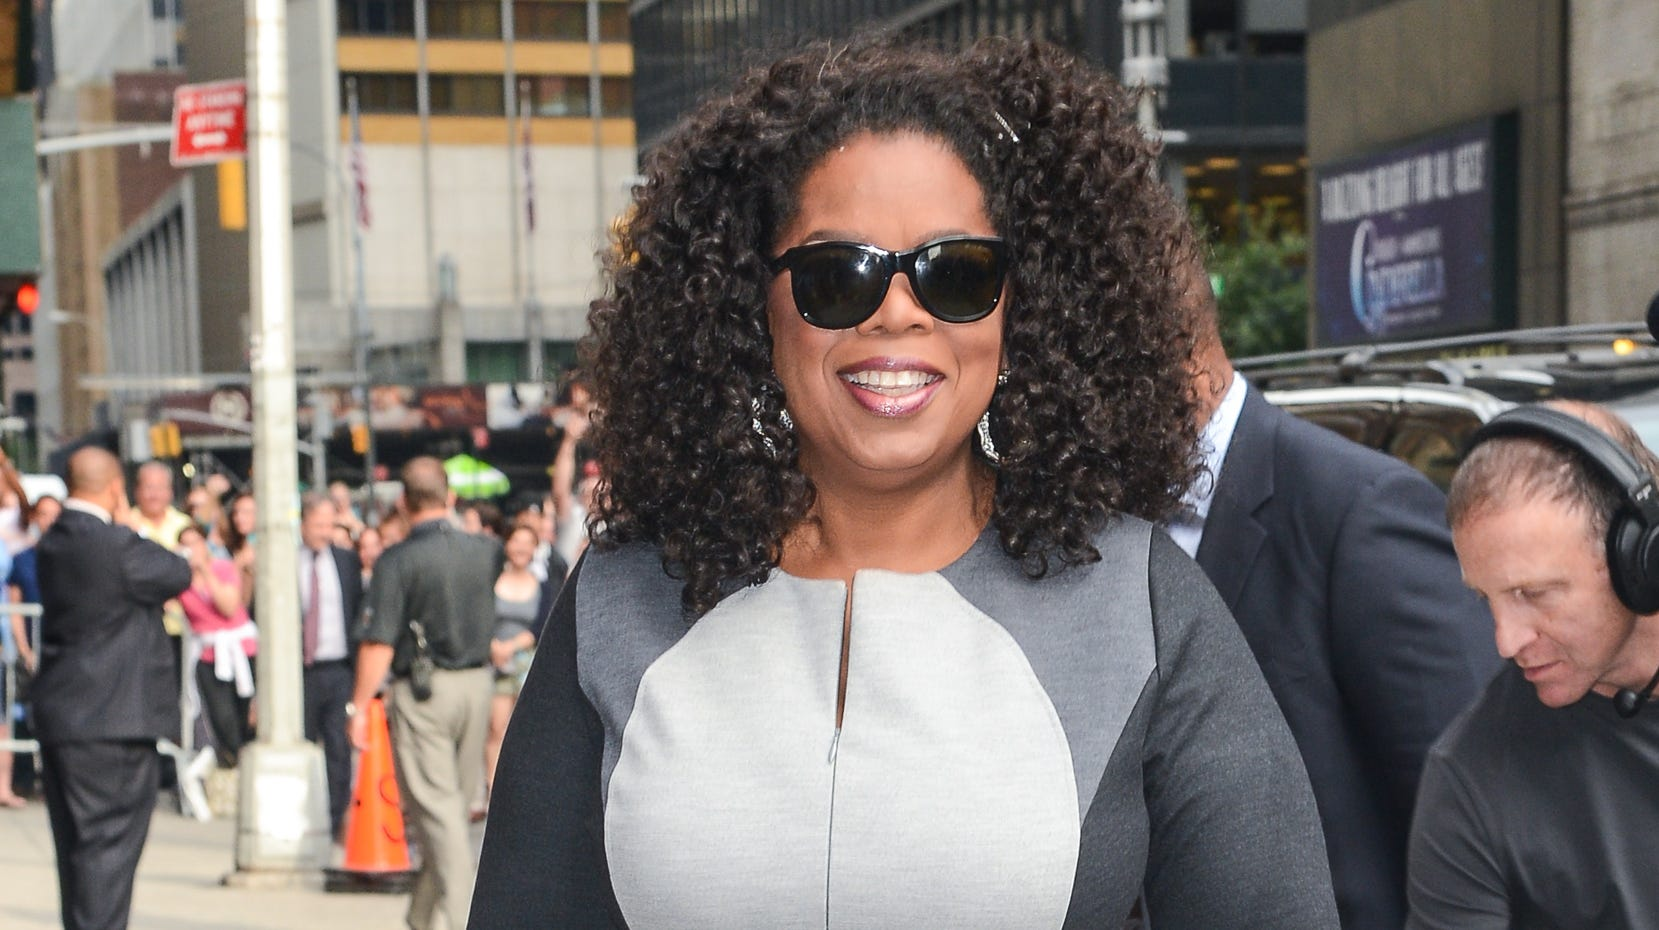 Oprah tries out the colorblocking trend in a multi-toned gray frock as she makes her way into the studio for a taping of the 'Late Show With David Letterman' on July 31.